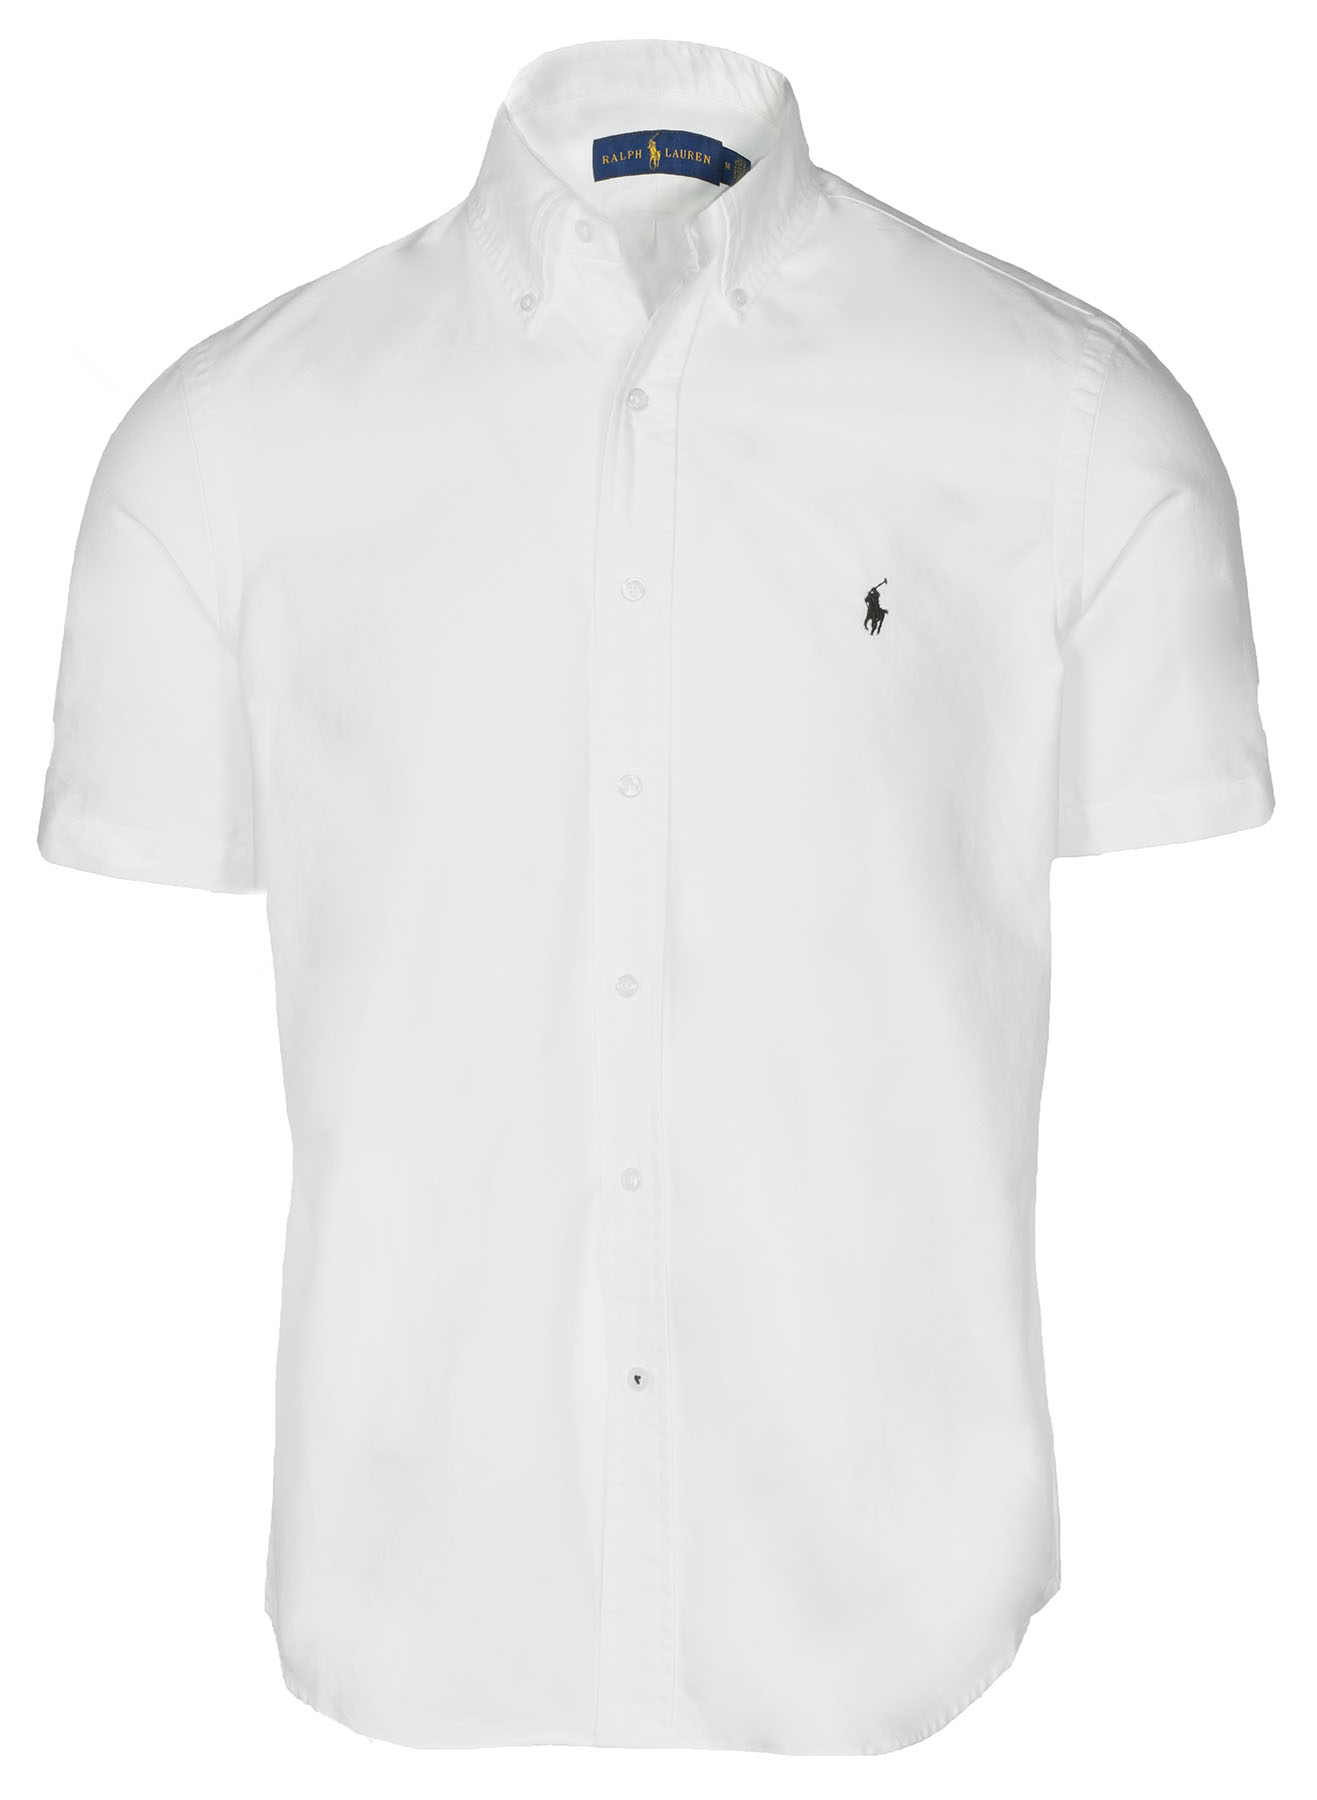 Polo Ralph Lauren Men s Standard Short Sleeve Button-Down Shirt ... 44faa5c343107